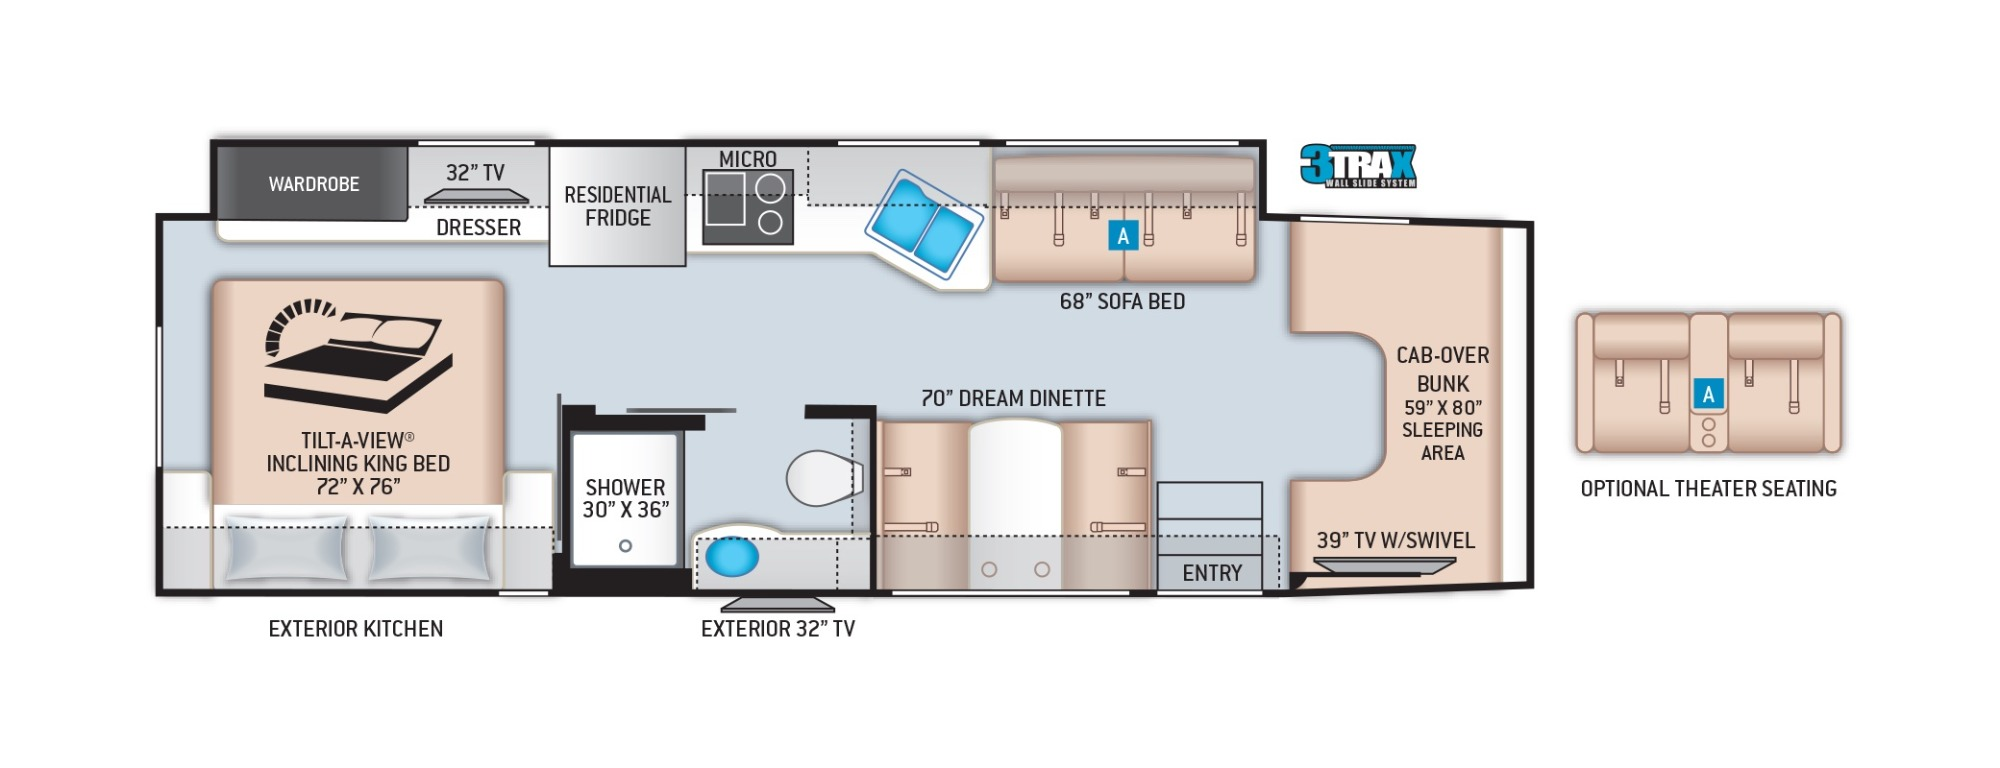 View Floor Plan for 2022 THOR MAGNITUDE SV34